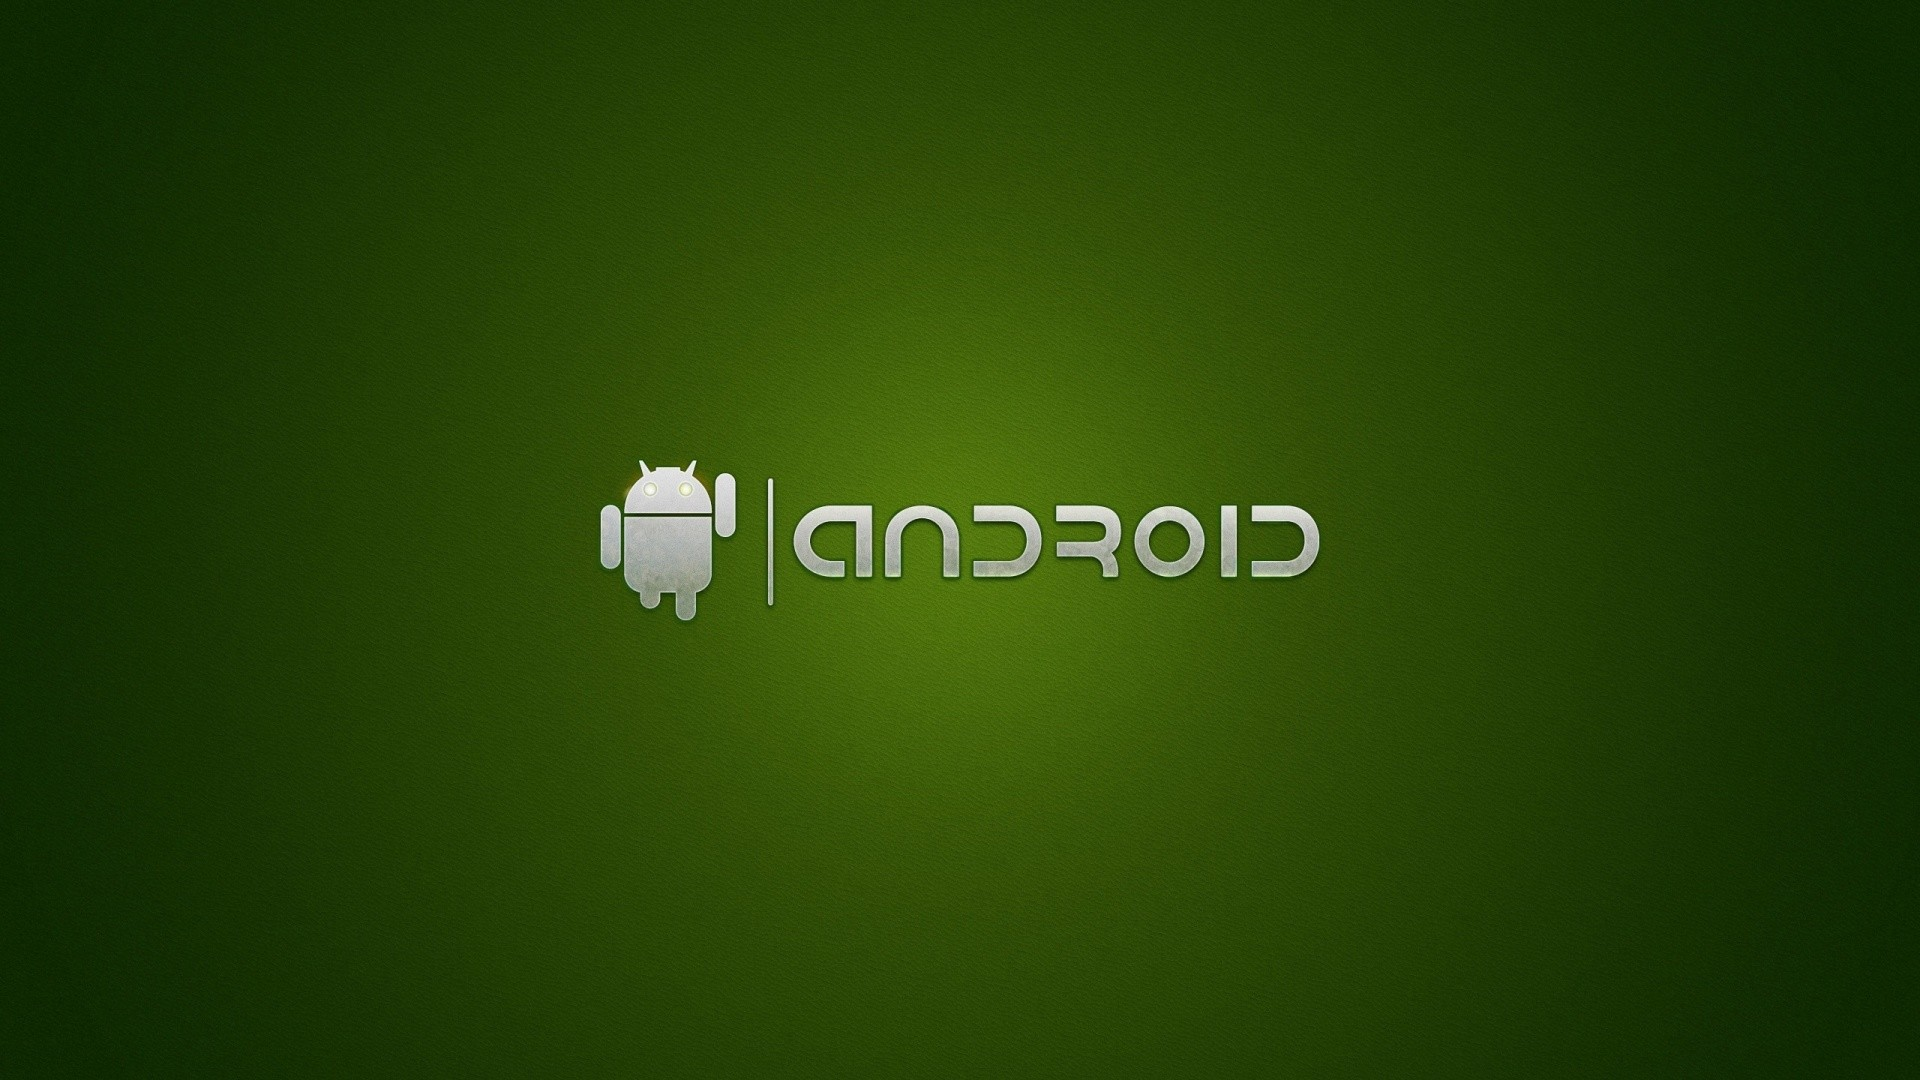 Android 3d Live Wallpaper Tutorial Animated Wallpapers For Android 4 0 4 Impremedia Net